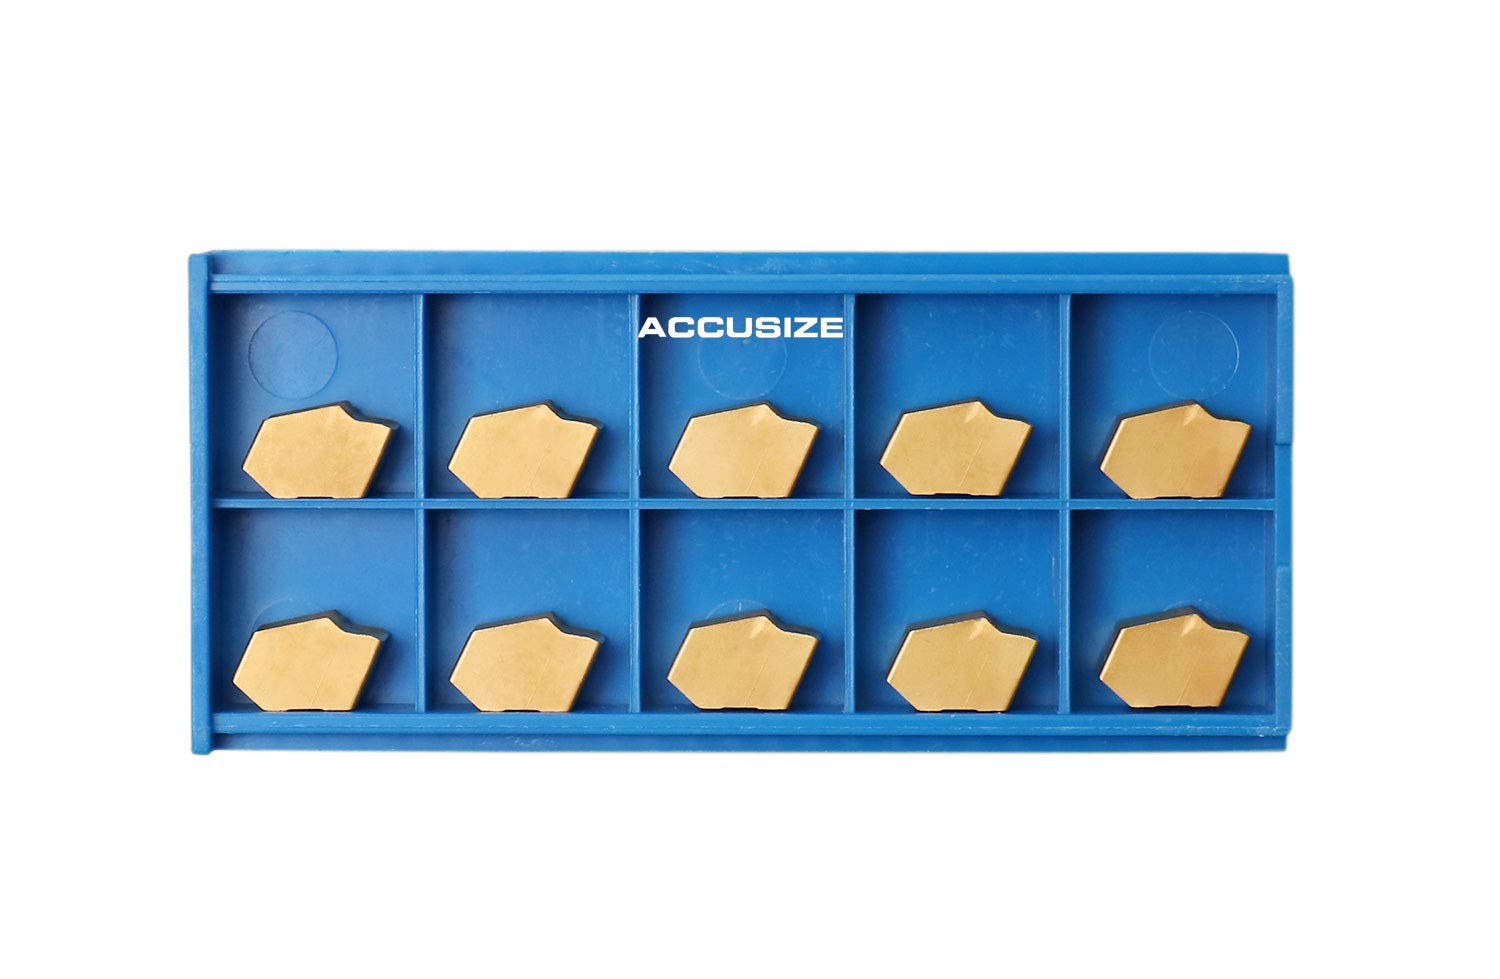 2403-2007x10 Accusize Industrial Tools Gtn-6 Carbide Inserts Tin Coated Width 0.250 Inch 10 Pcs//Box Fit for Cut-Off Blade Ncih32-6